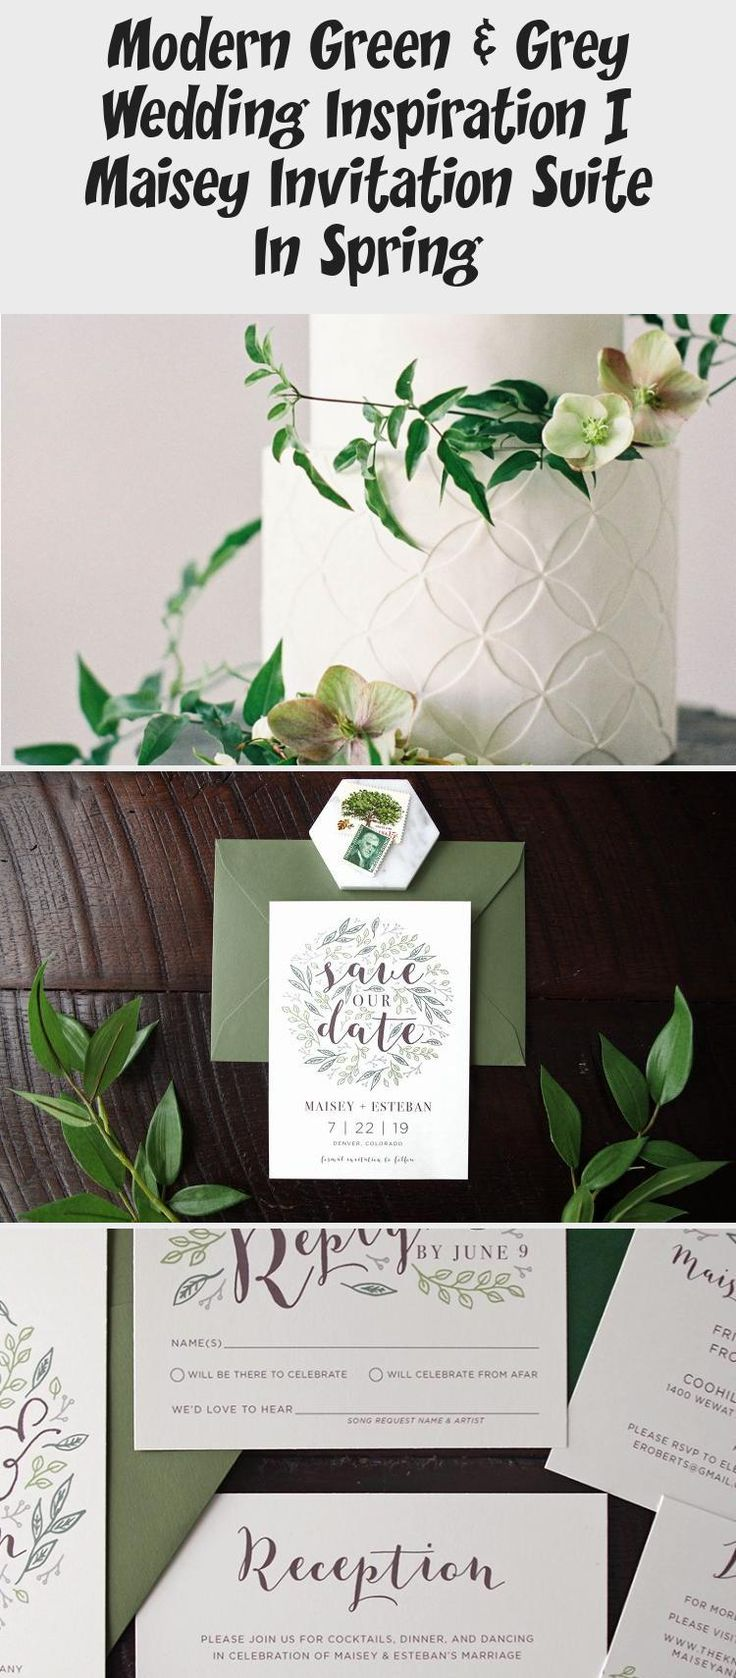 Botanical illustration Green & Grey Wedding inspiration perfect for a modern garden wedding or an urban wedding dripping with greenery. Palette of greens - emerald and sage. Earthy and organic with clean, modern touches. Bridesmaid dresses #BridesmaidDresses2019 #BridesmaidDressesPurple #BridesmaidDressesSequin #WeddingBridesmaidDresses #BridesmaidDressesCoral